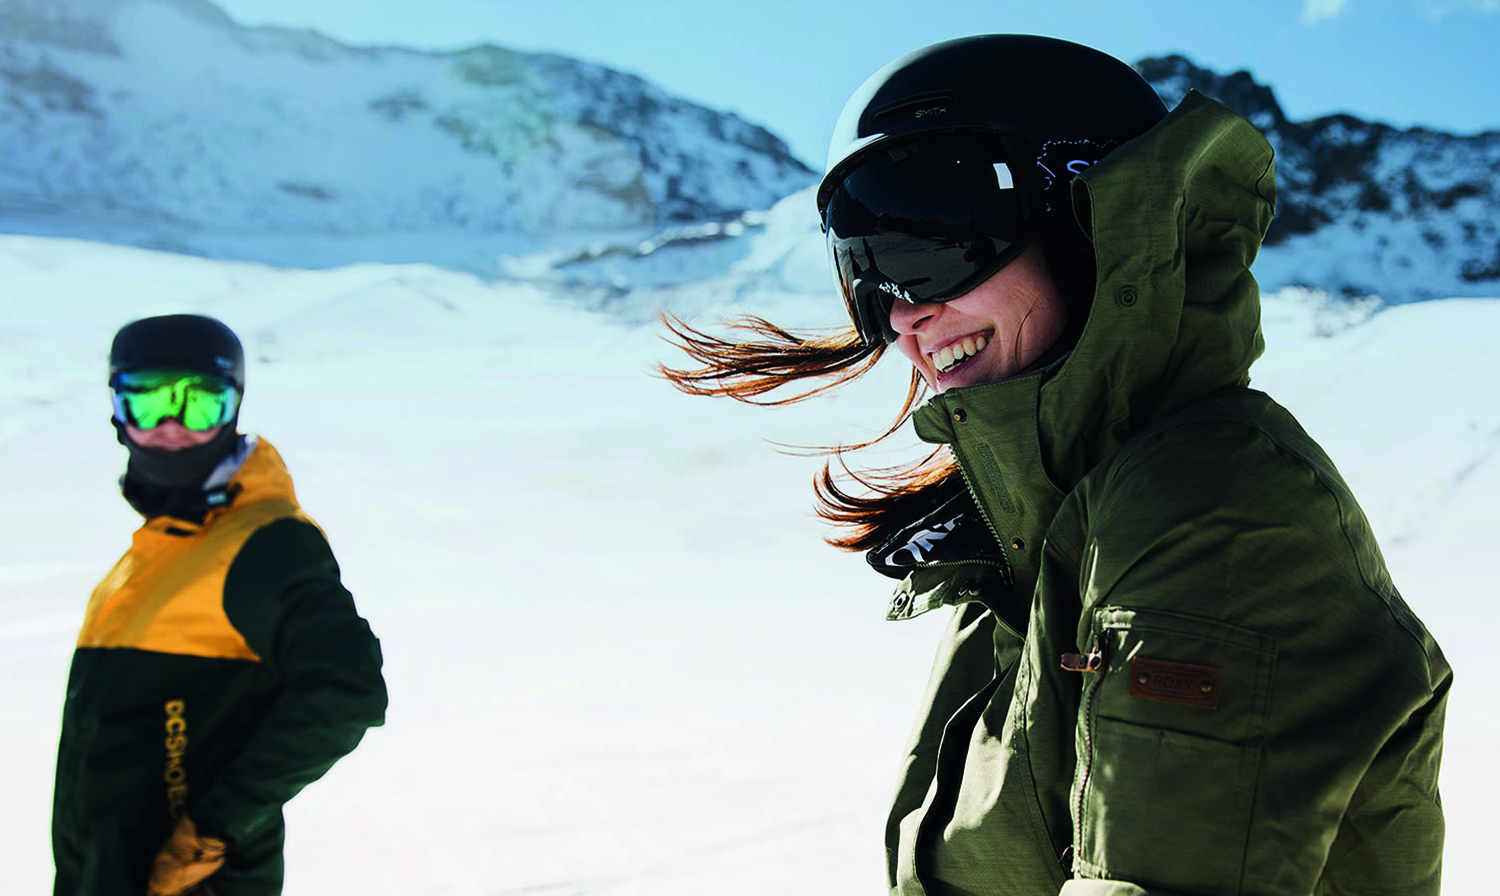 Picture © Planet Sports: Winter sportswear in action